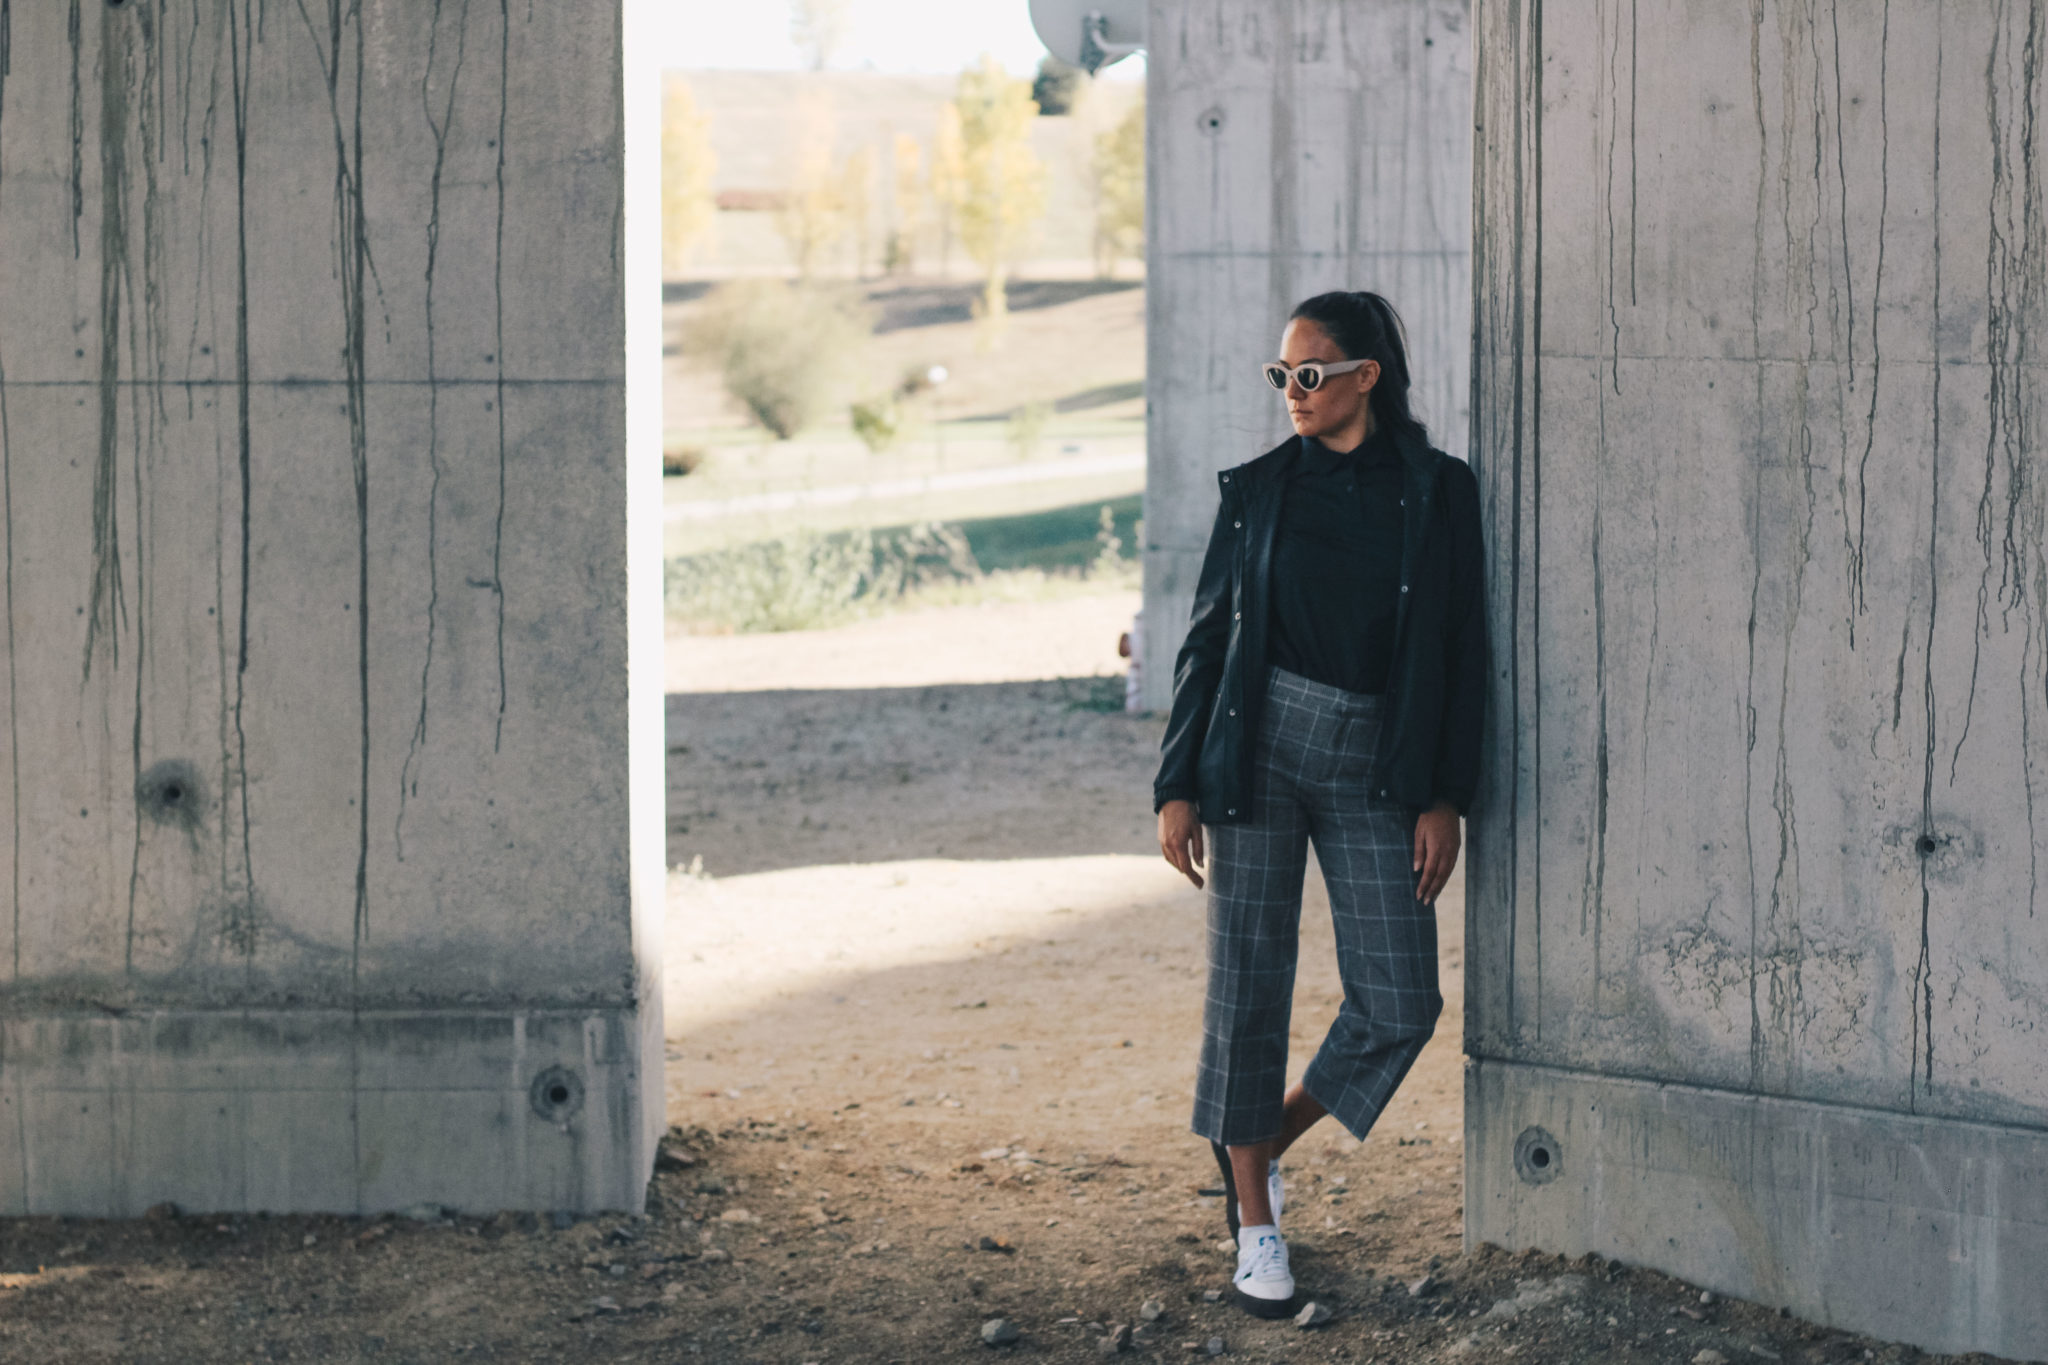 Adidas Originals Sambarose white women, Lacoste polo shirt, checked grey Zara pants, outfit, style by Bulgarian fashion blogger Michaella from Quite a Looker